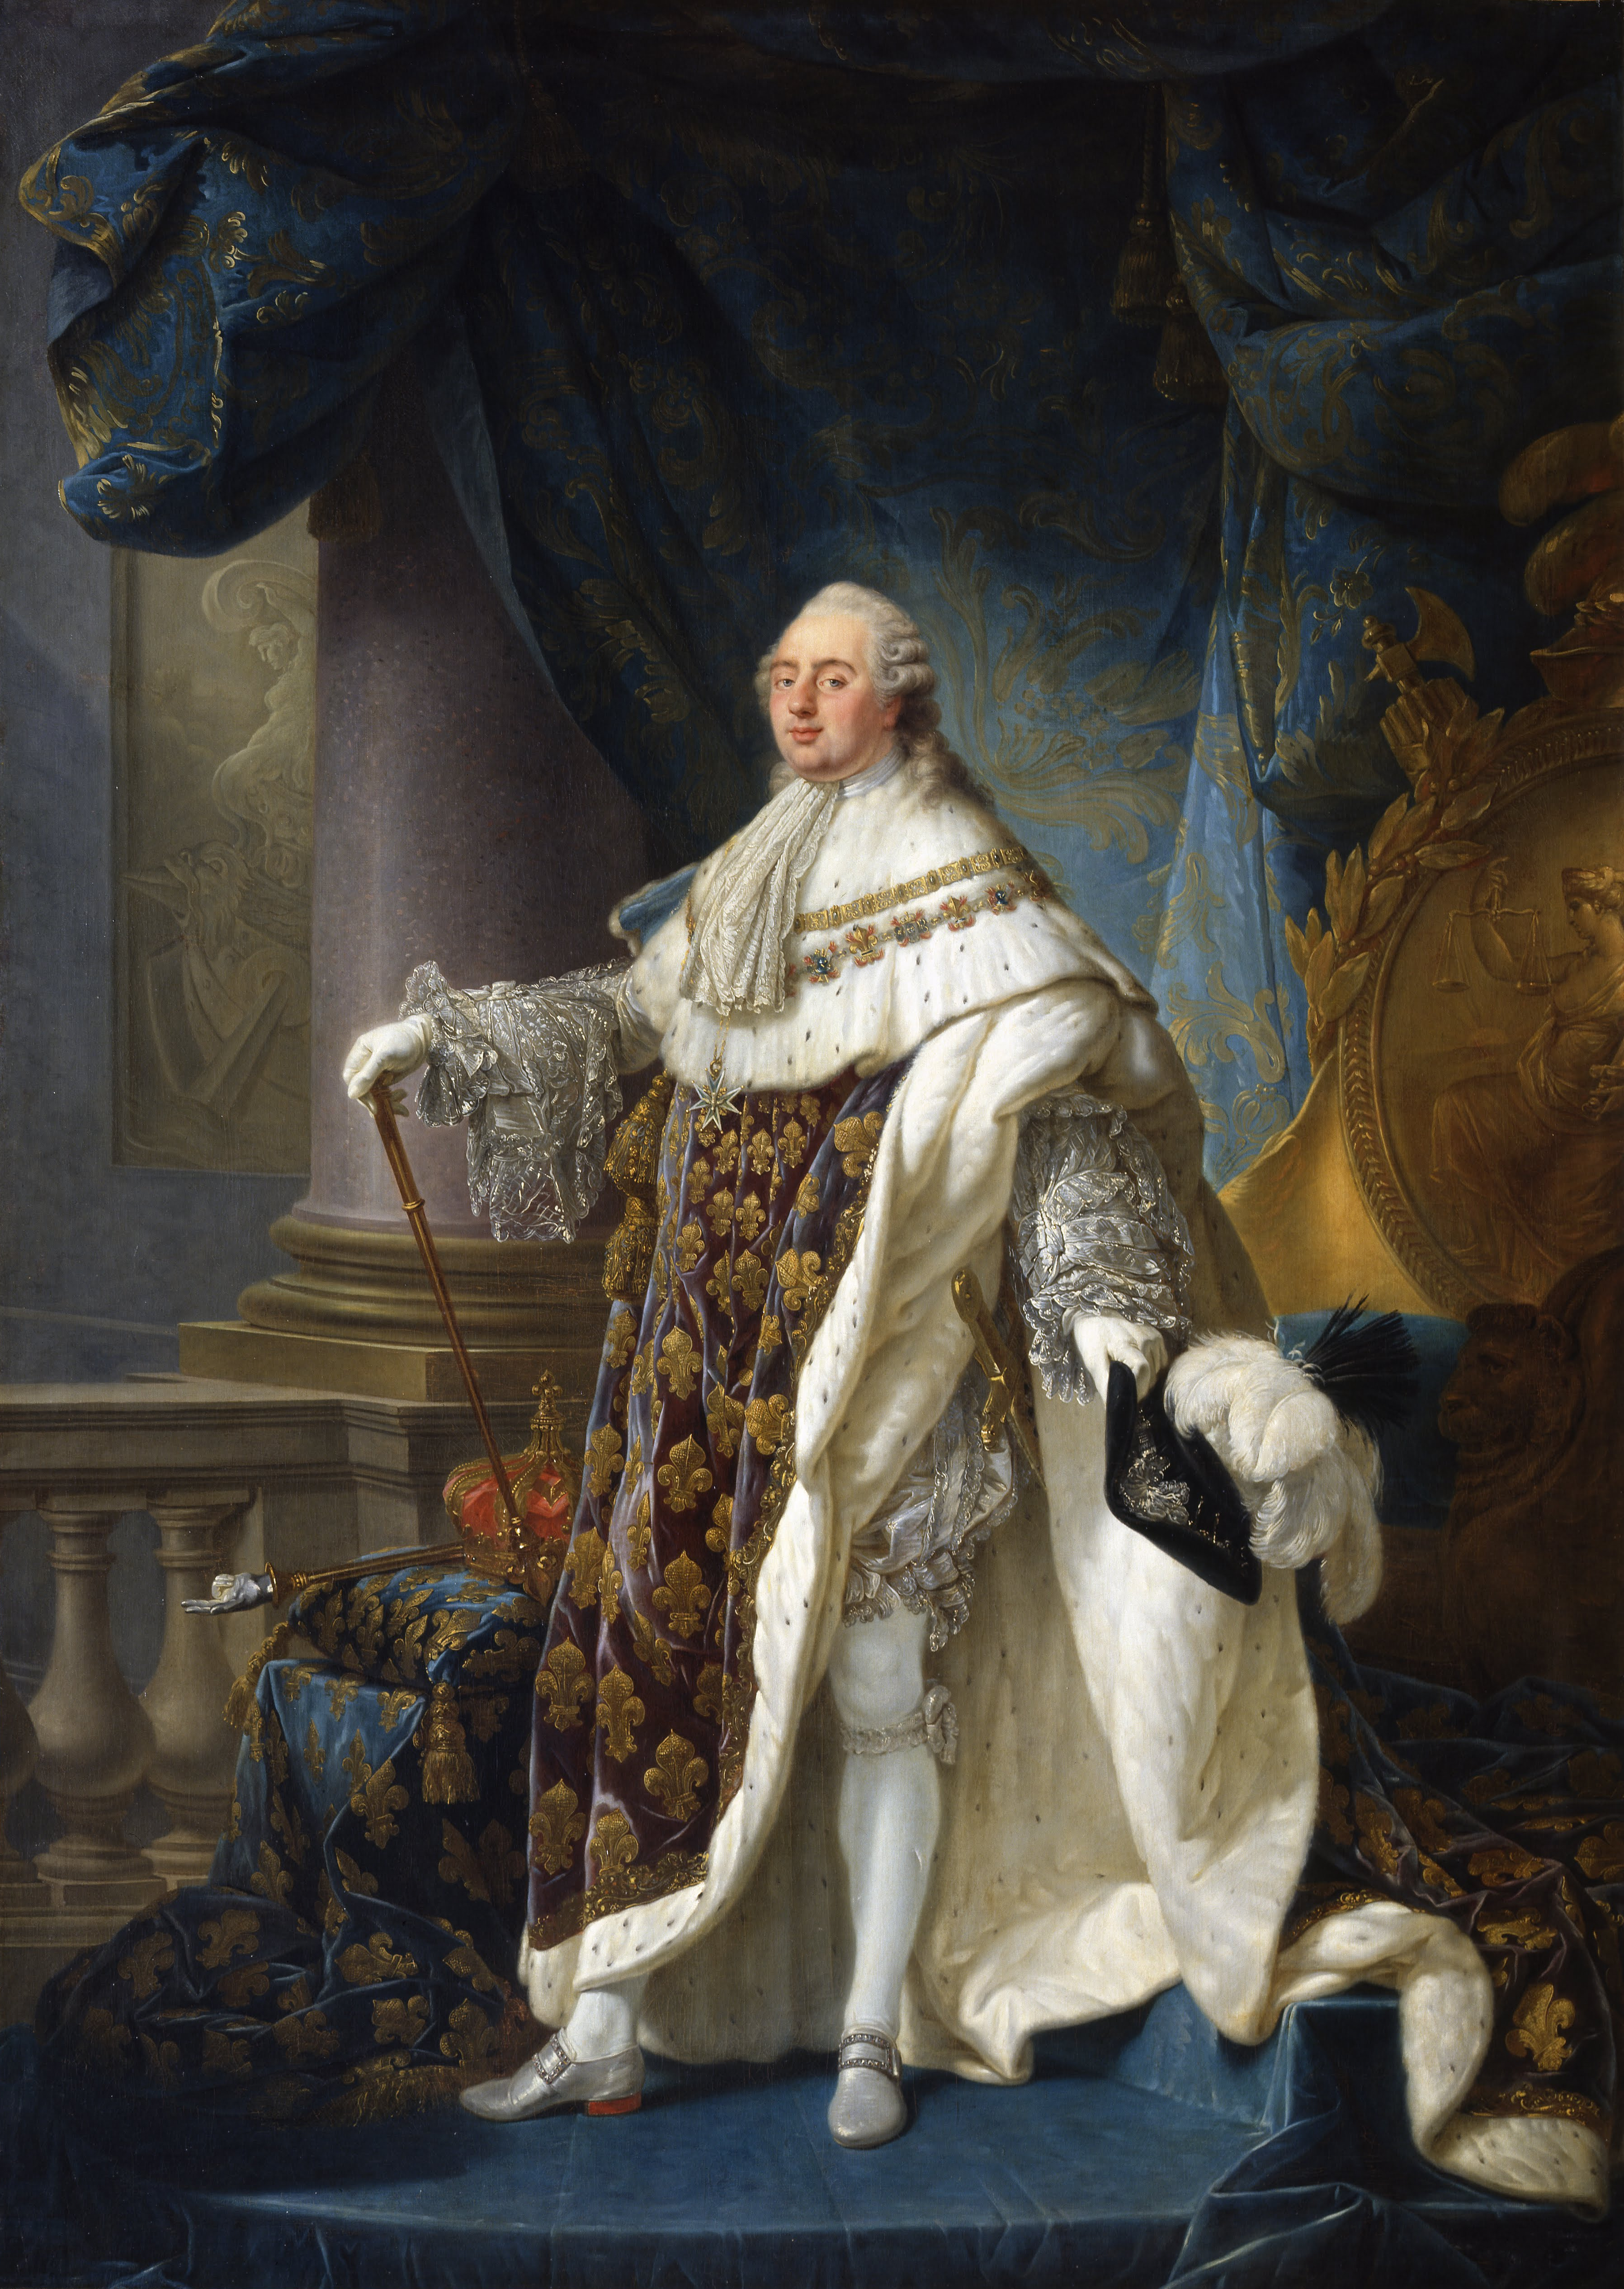 Louis XVI, King of France and Navarre (1754-1793), wearing his grand royal costume in 1779. Painting by Antoine-François Callet (1789).